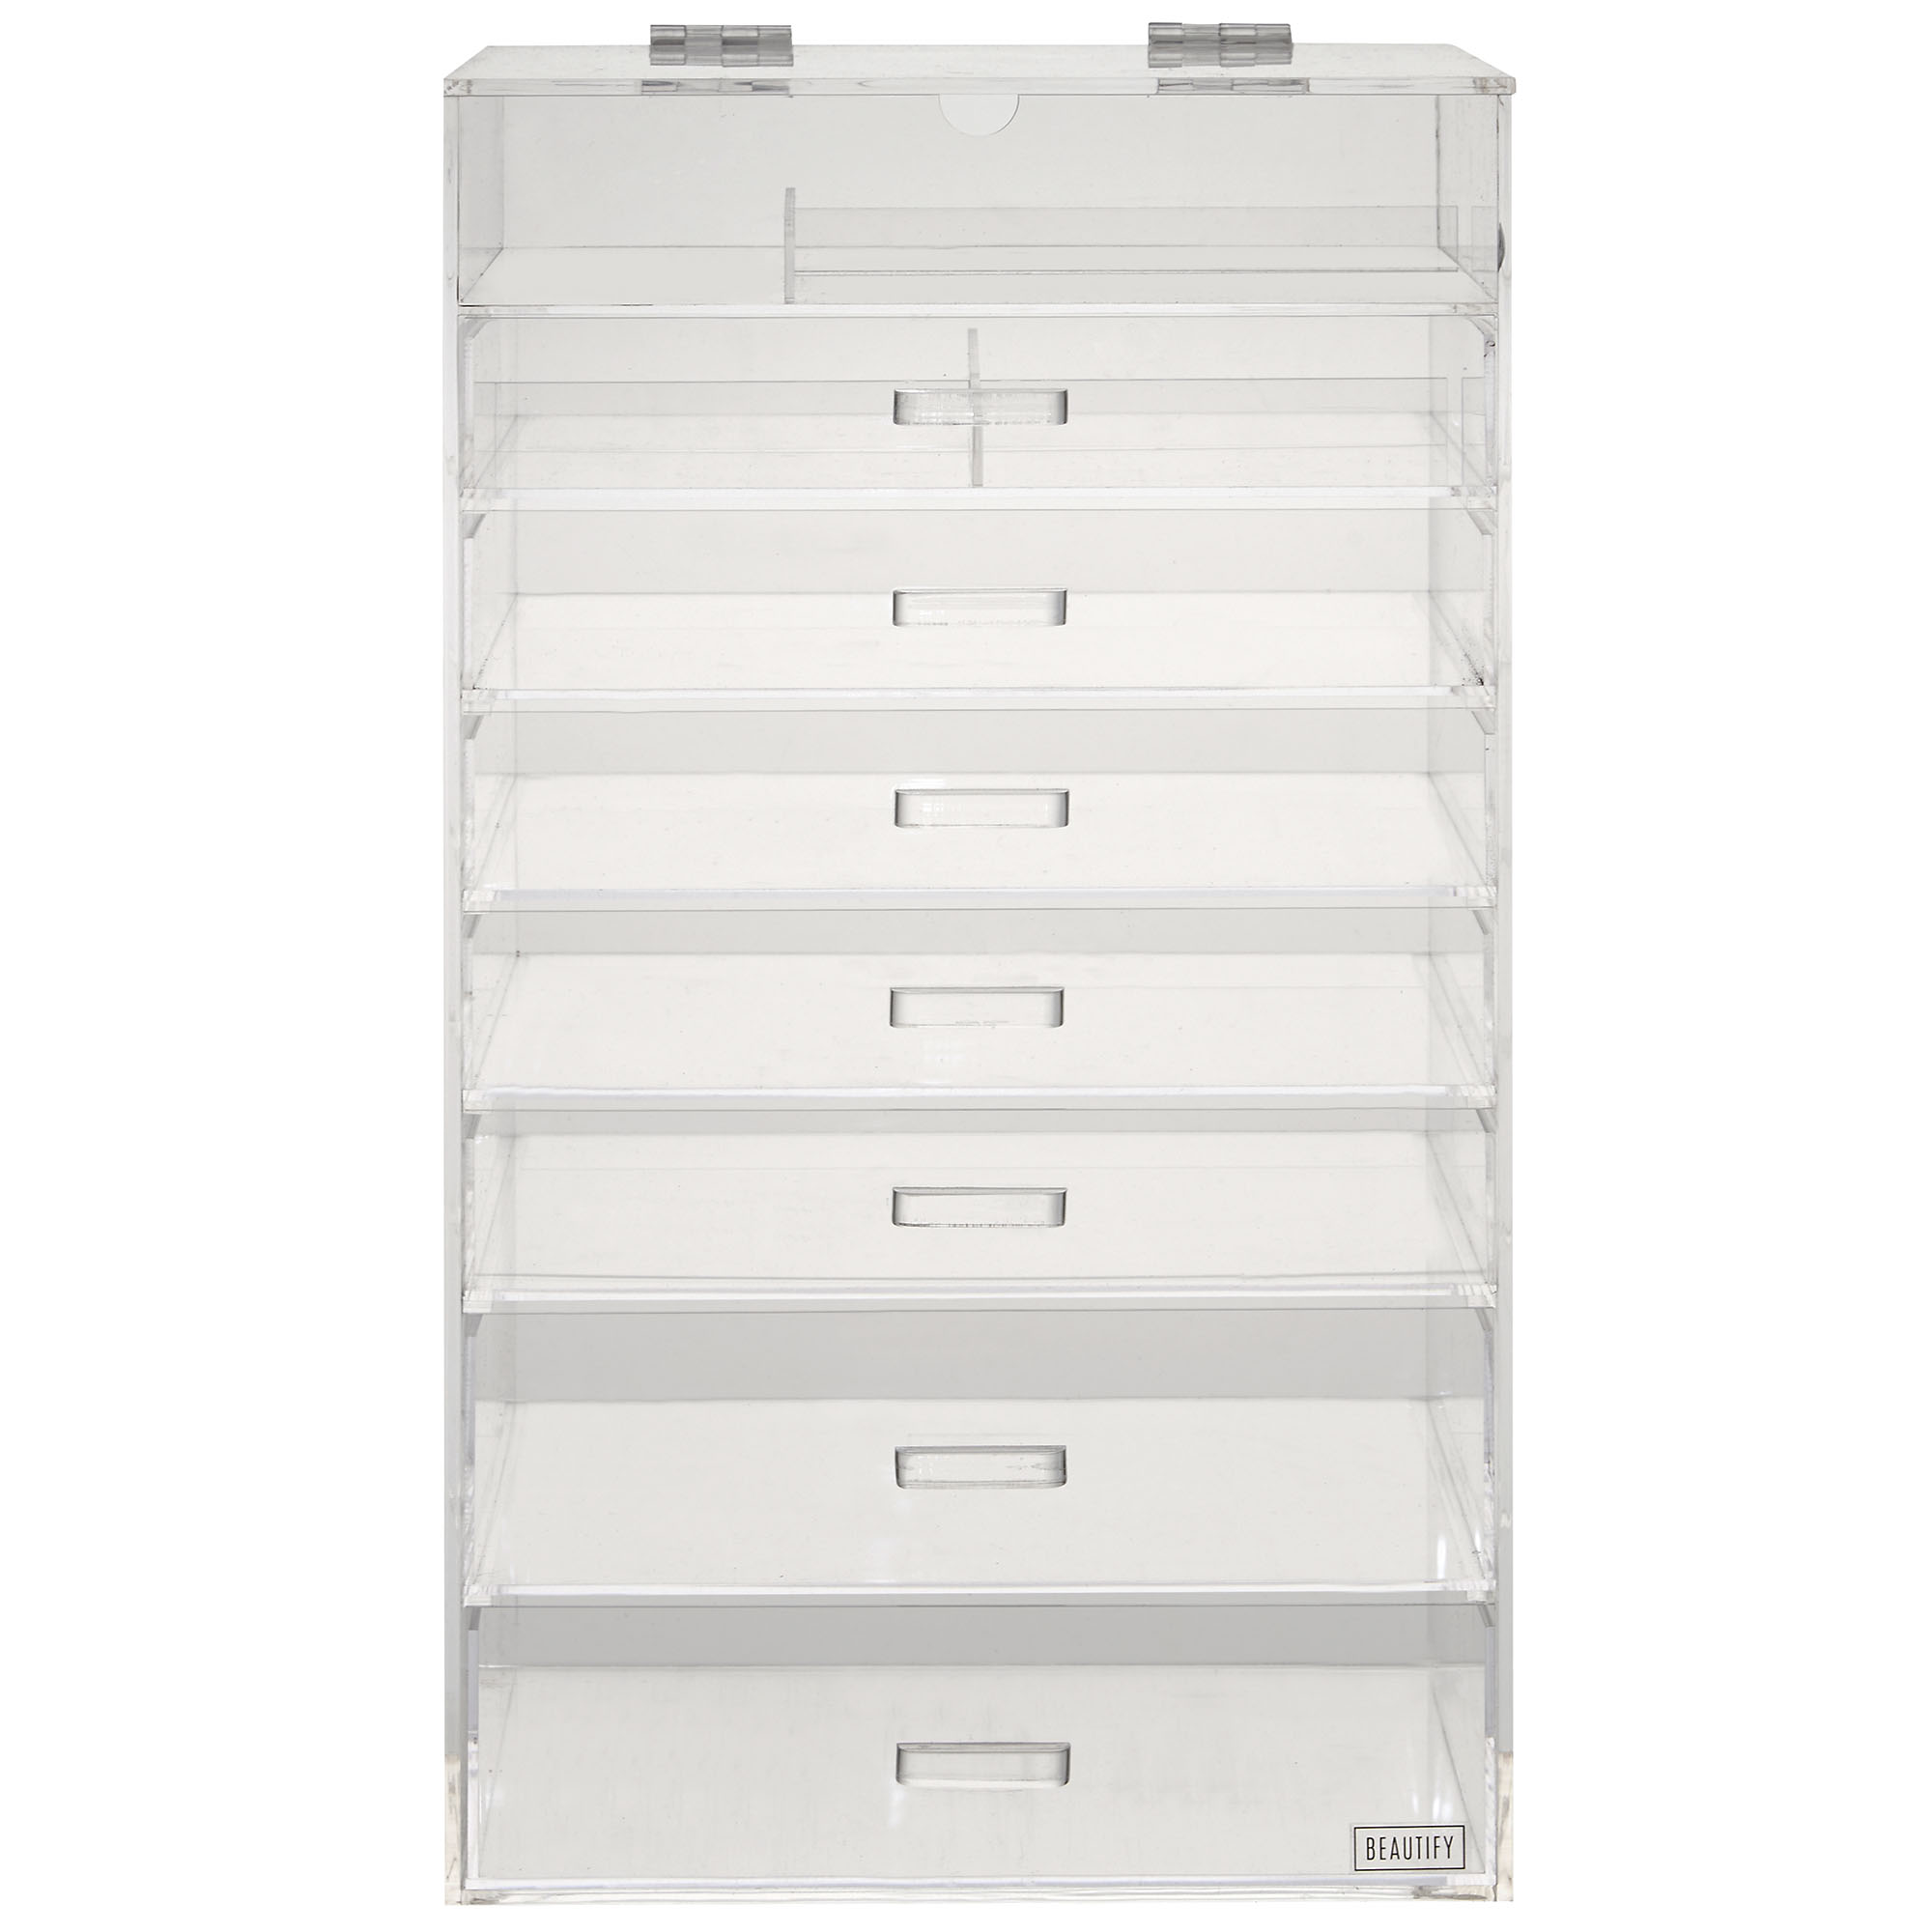 Beautify Tier Clear Acrylic Cosmetics Makeup Storage Display - Acrylic cube makeup organizer with drawers